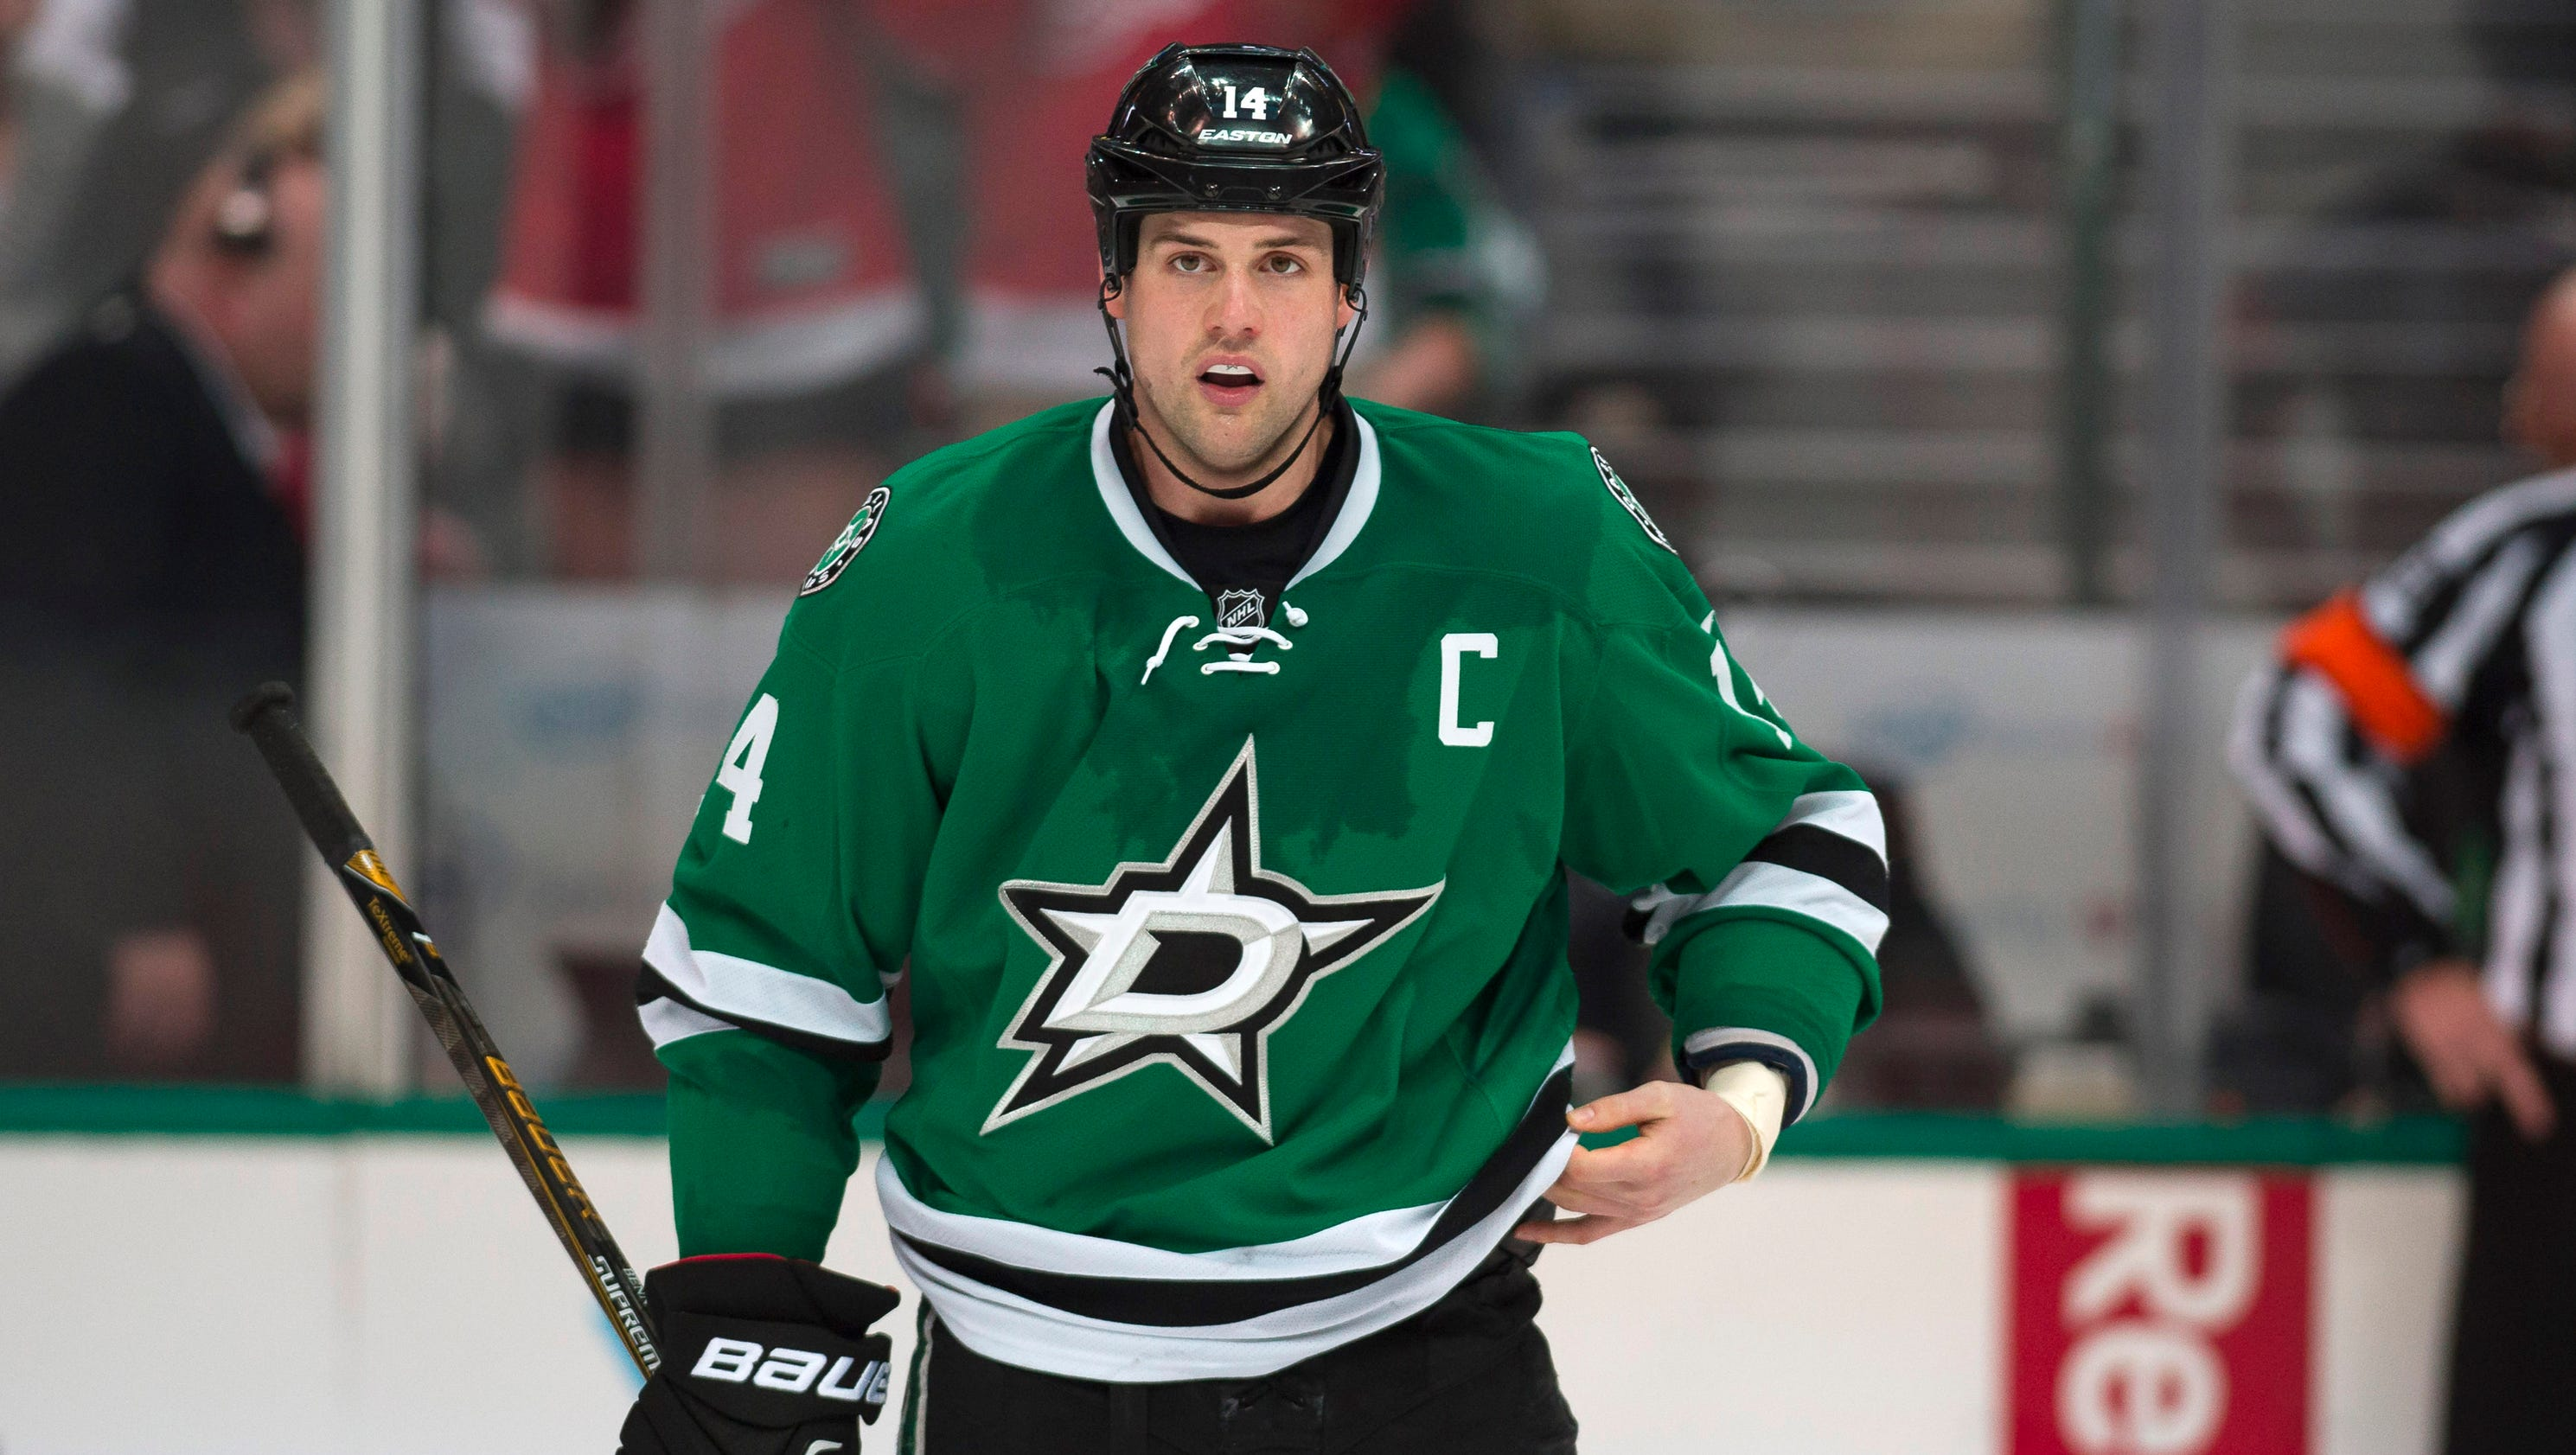 636403073552050472-usp-nhl--detroit-red-wings-at-dallas-stars